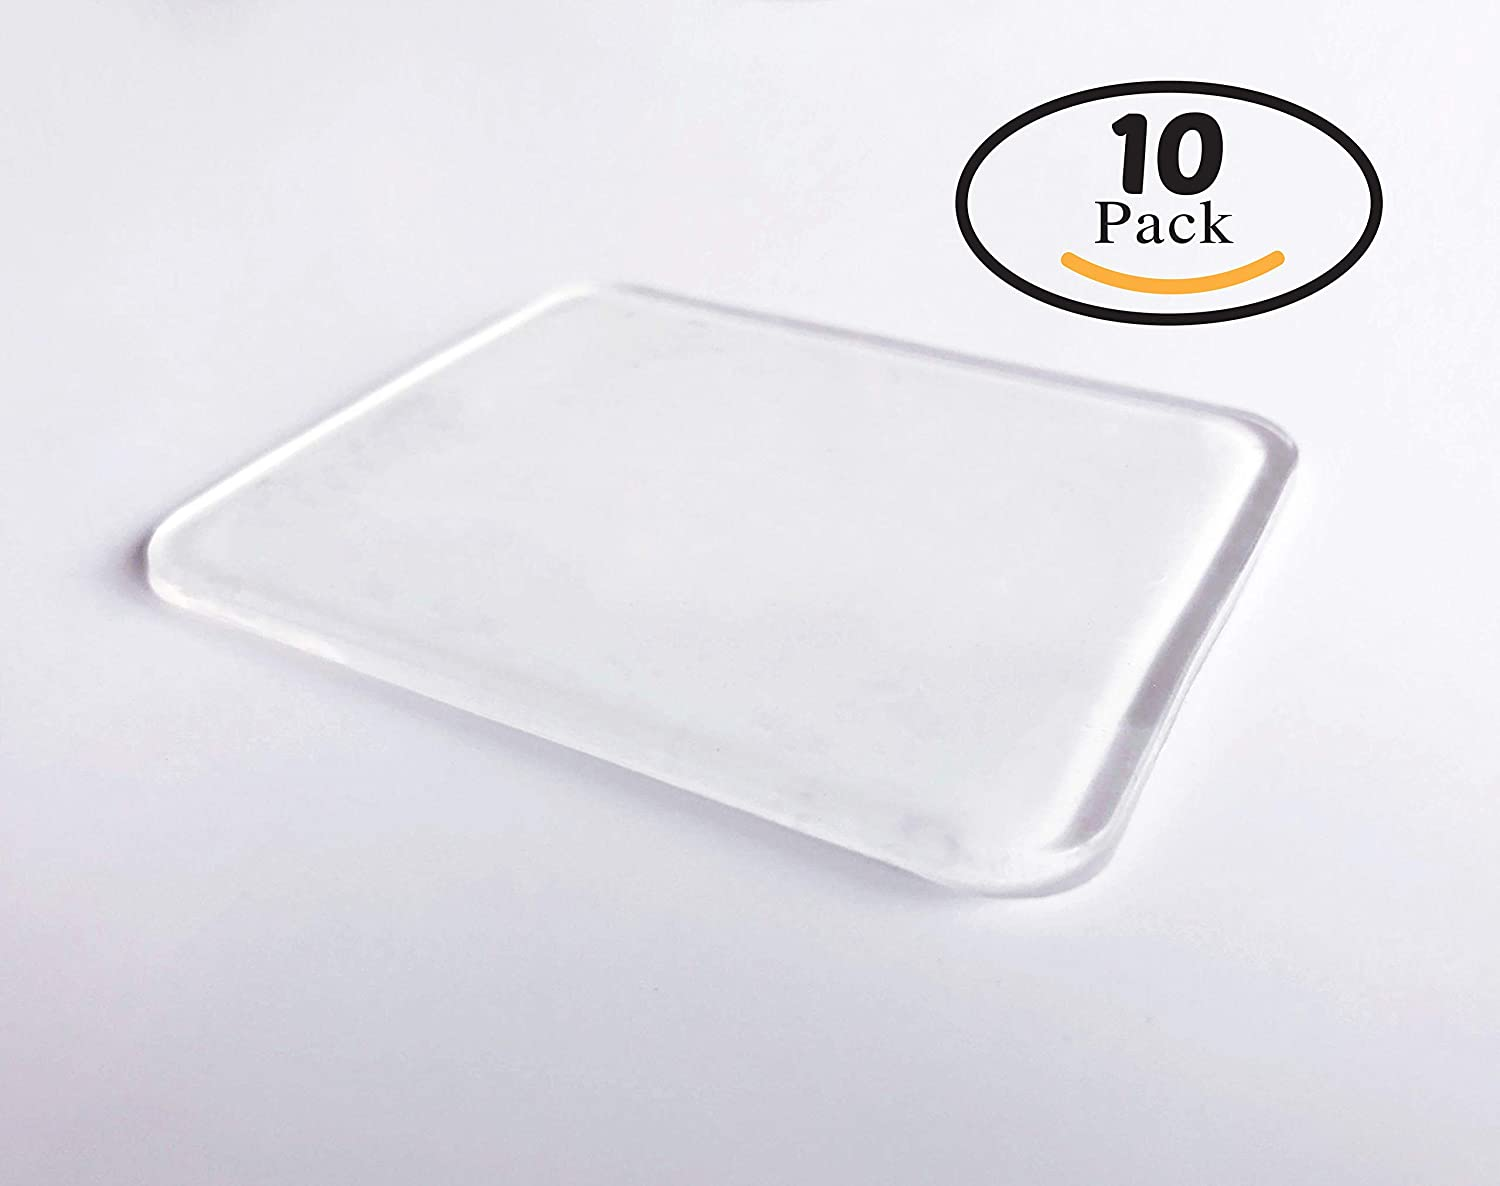 Amazon com 10 super sticky silicone gel pads clear anti slip gel pads auto gel holders durable washable cell pad transparent mp3 players accessories